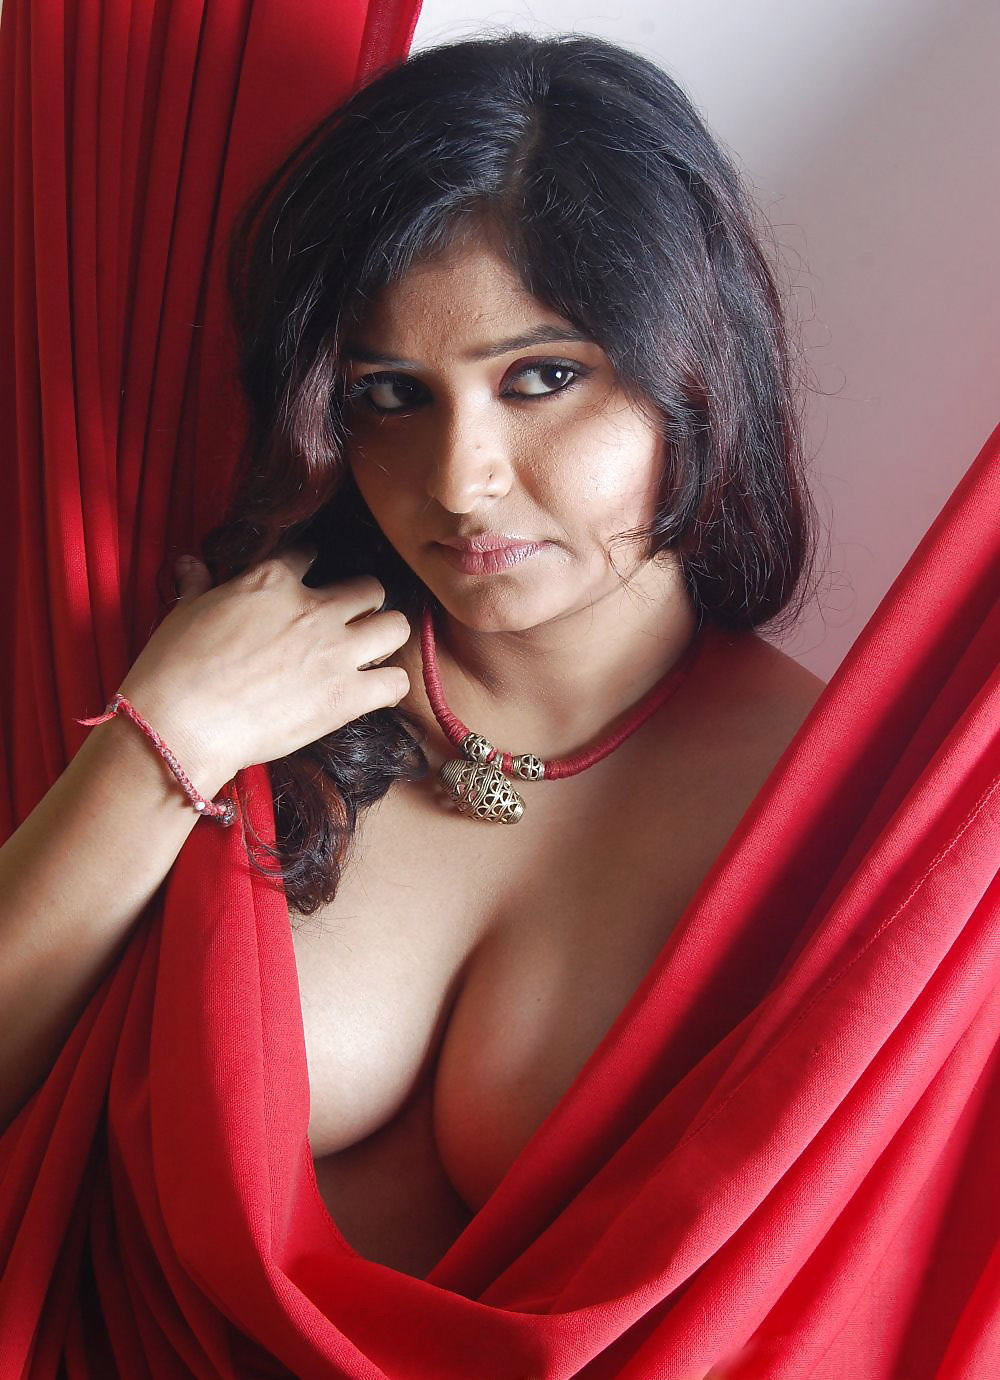 Hot Sexy Nude Indian Girl